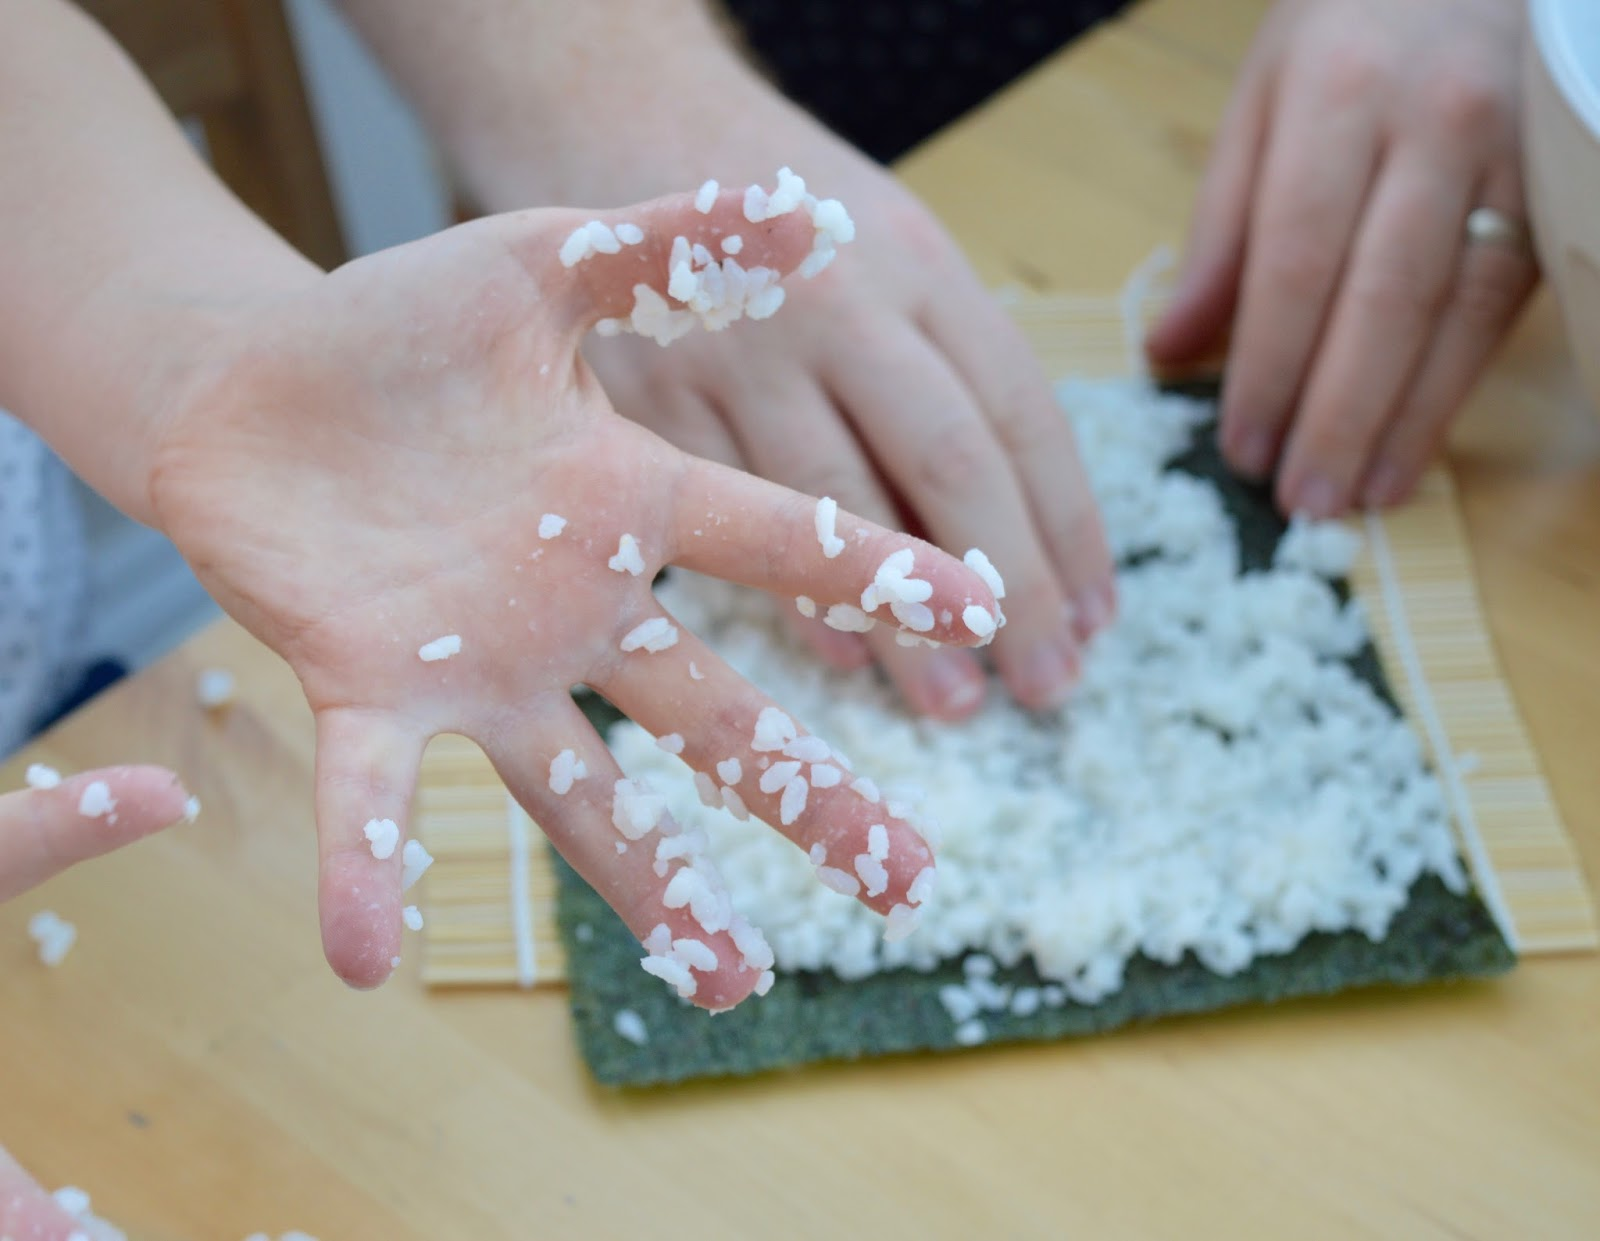 Sushi Making With Kids - A Tutorial for Beginners with Yutaka - sticky sushi rice